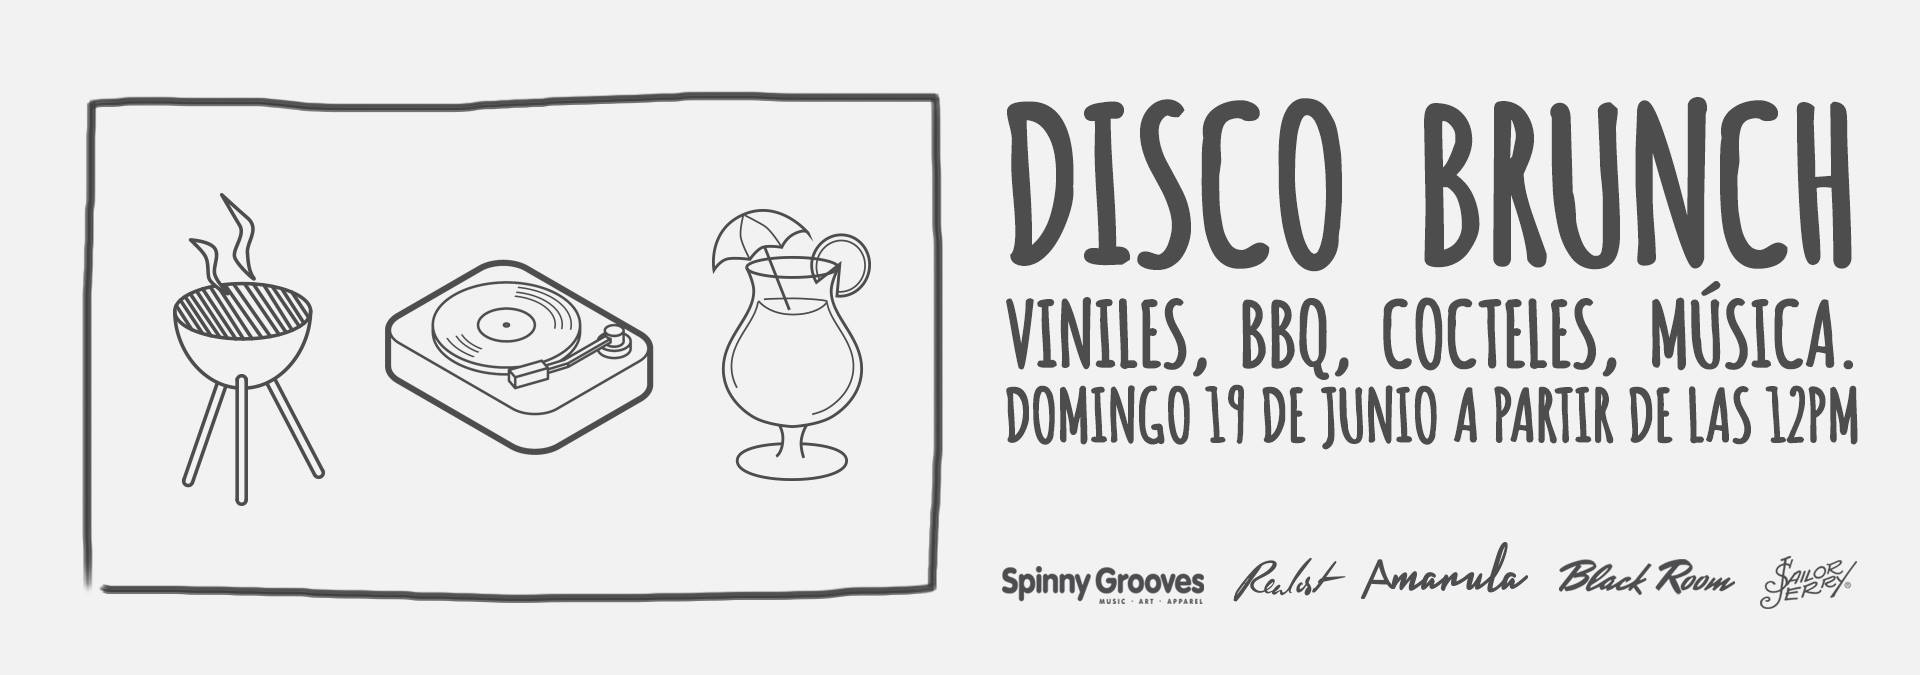 Disco Brunch - mercado de discos de vinilo en cancun